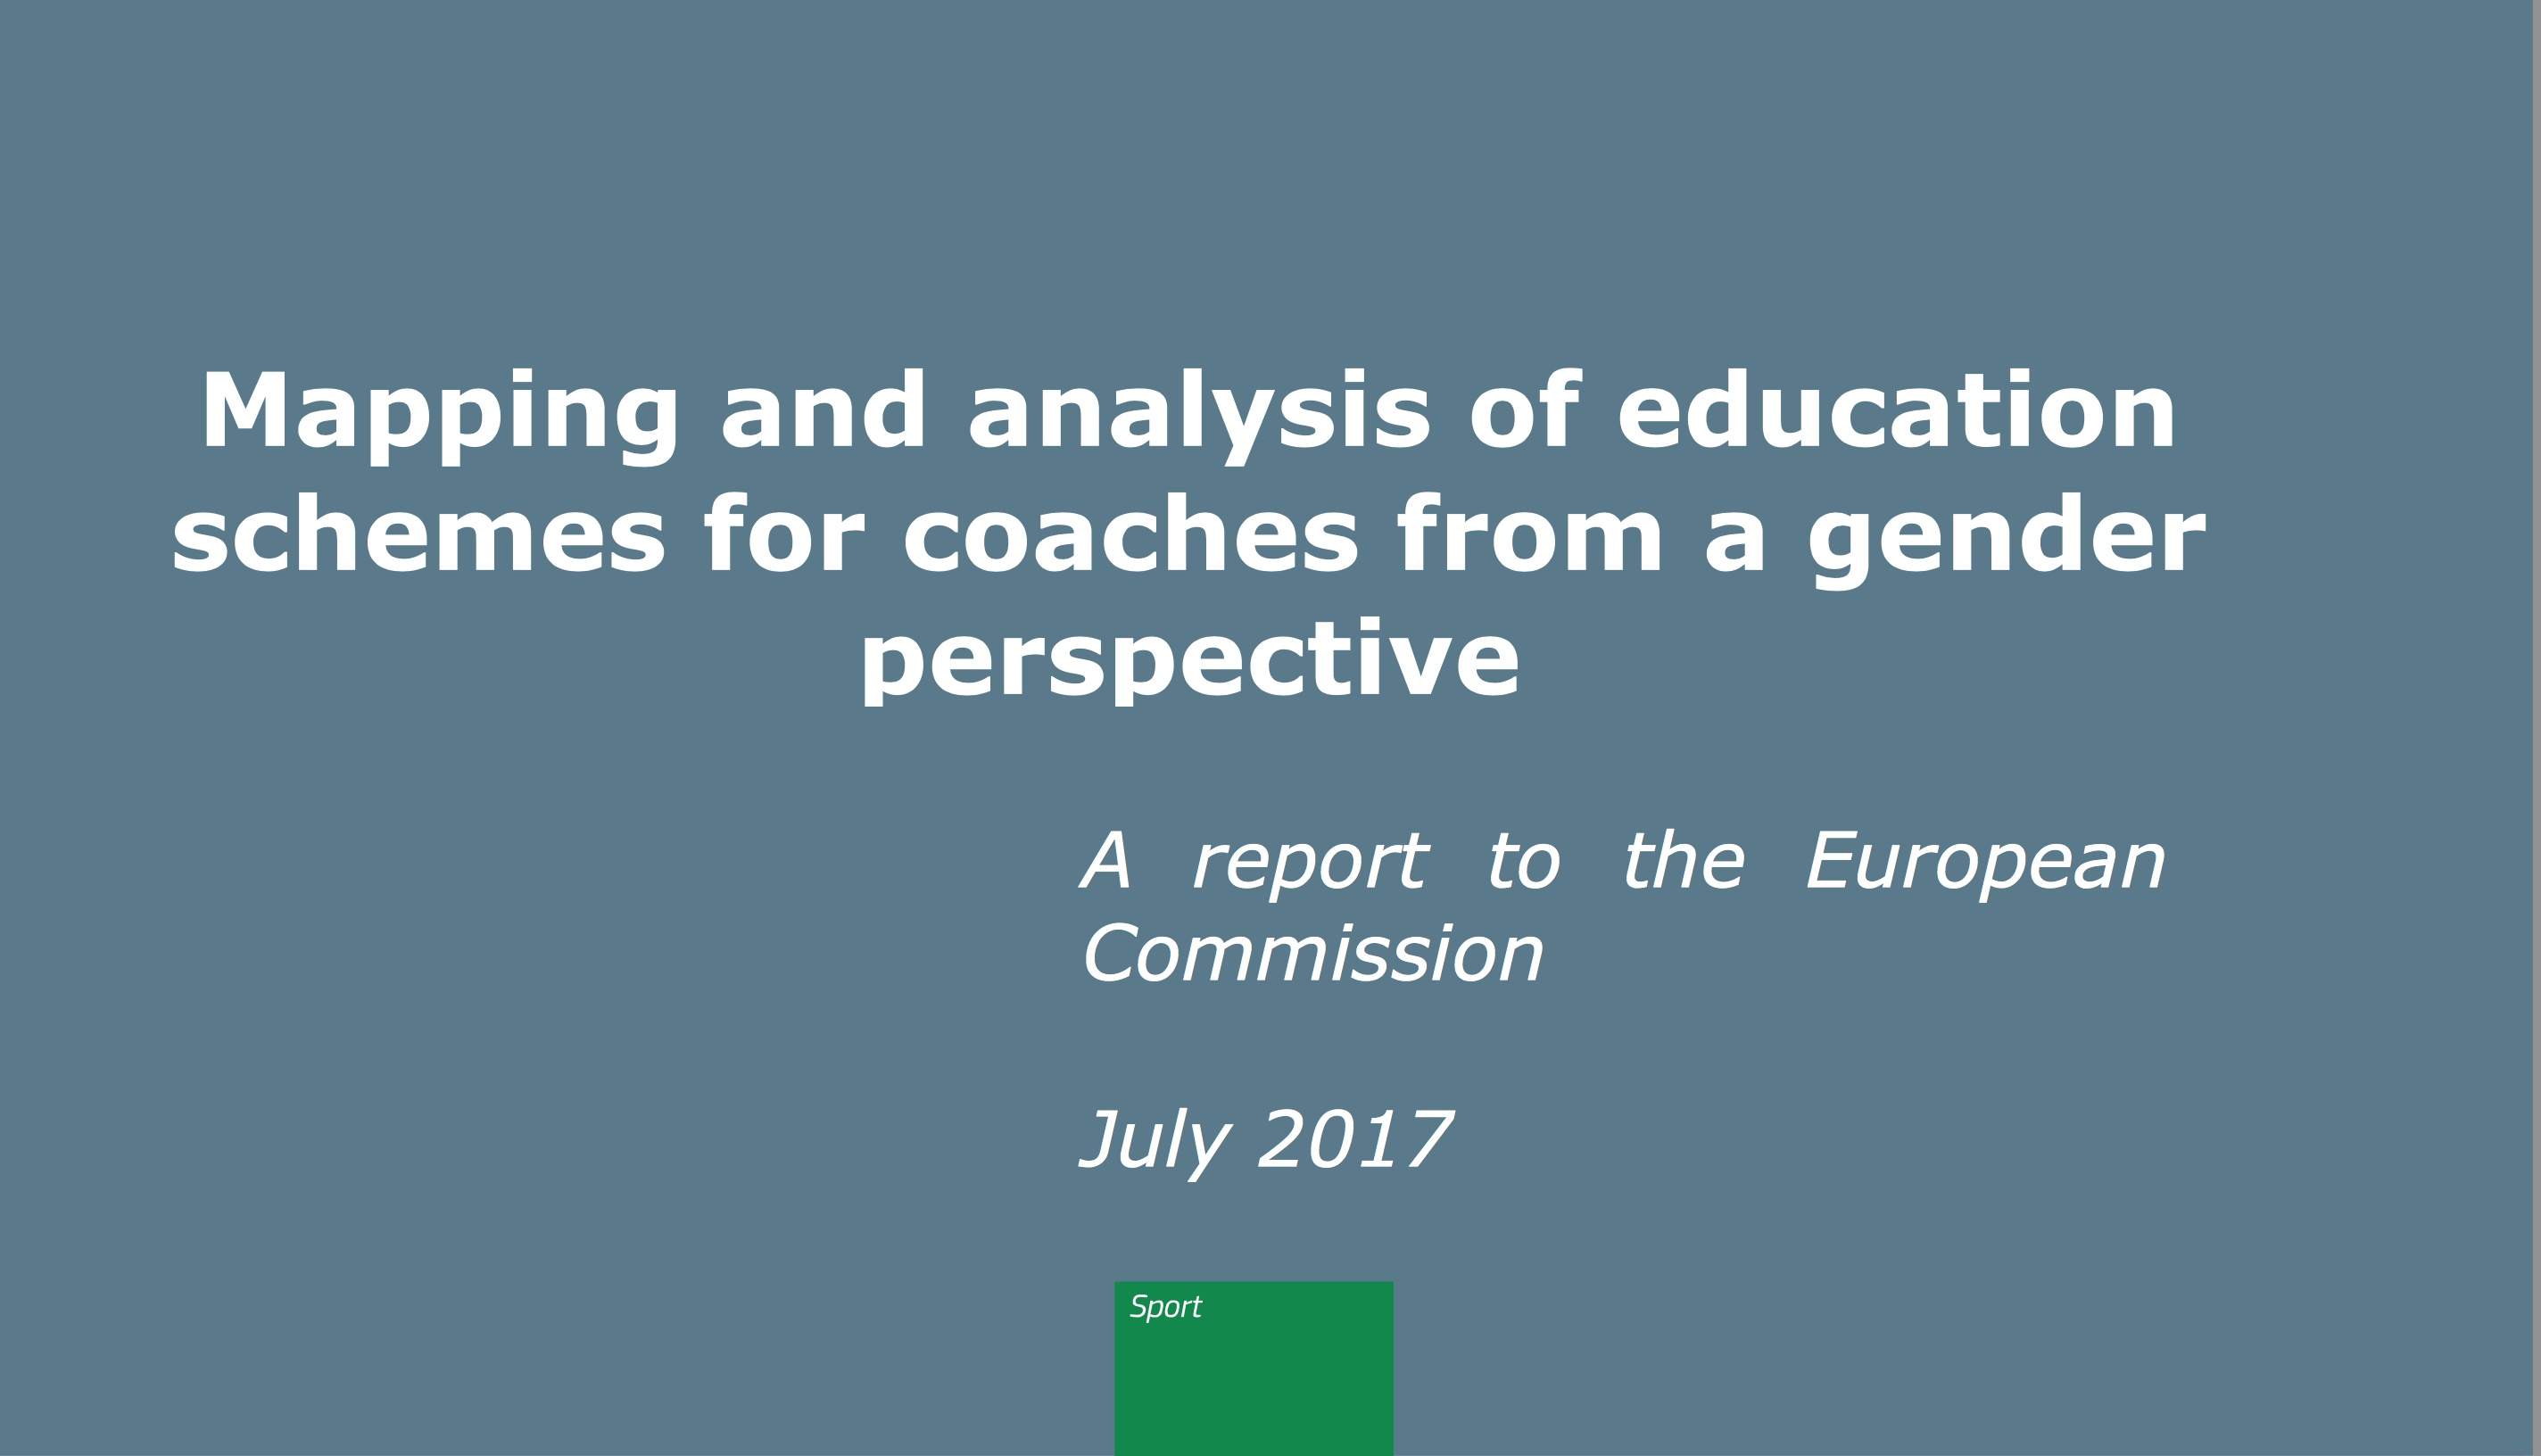 Education schemes for coaches from a gender perspective